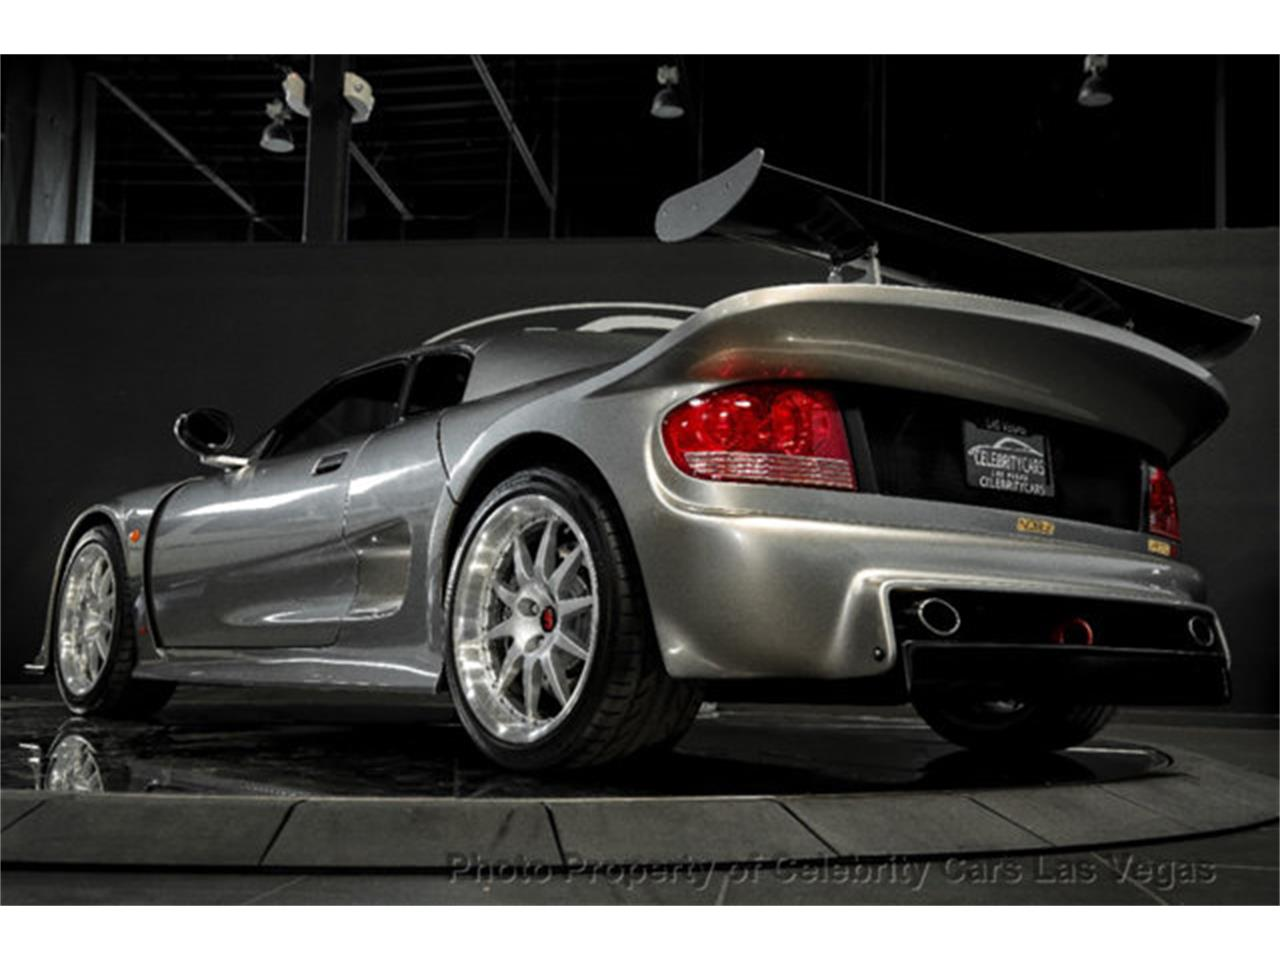 Large Picture of '04 Noble M12 GTO-3R located in Nevada - OY16